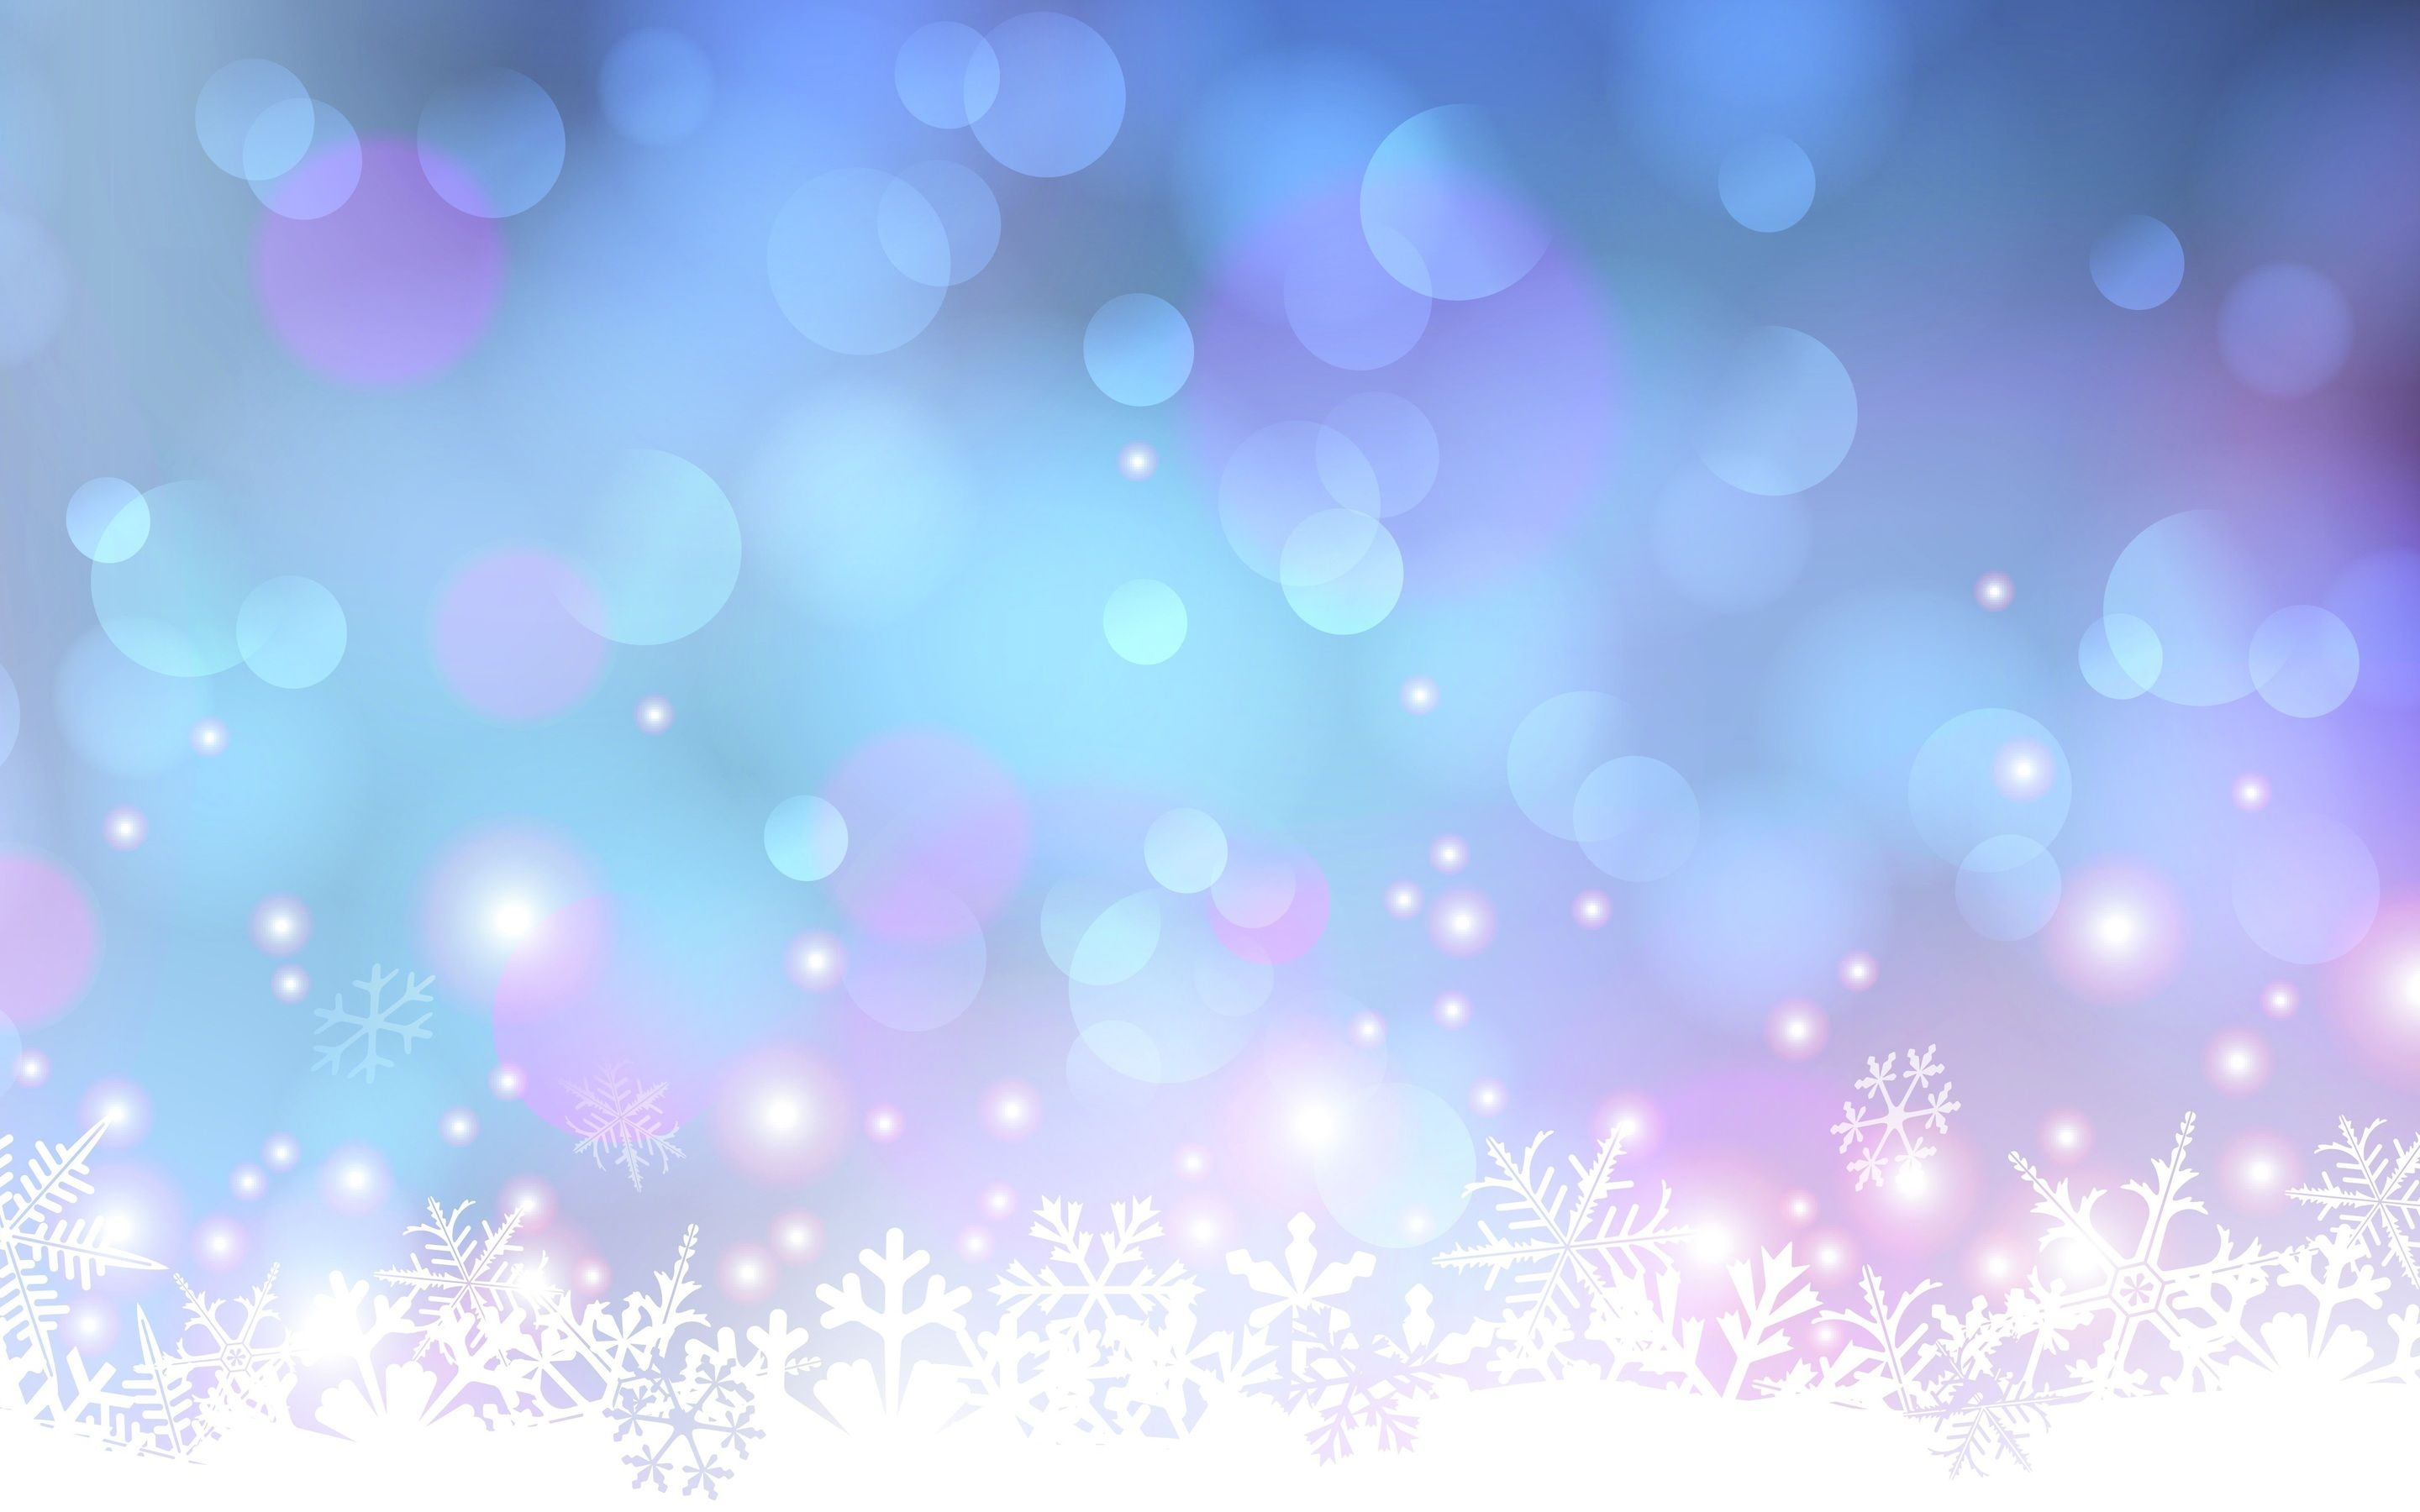 Christmas Holiday Background.Pin On Christmas Backgrounds